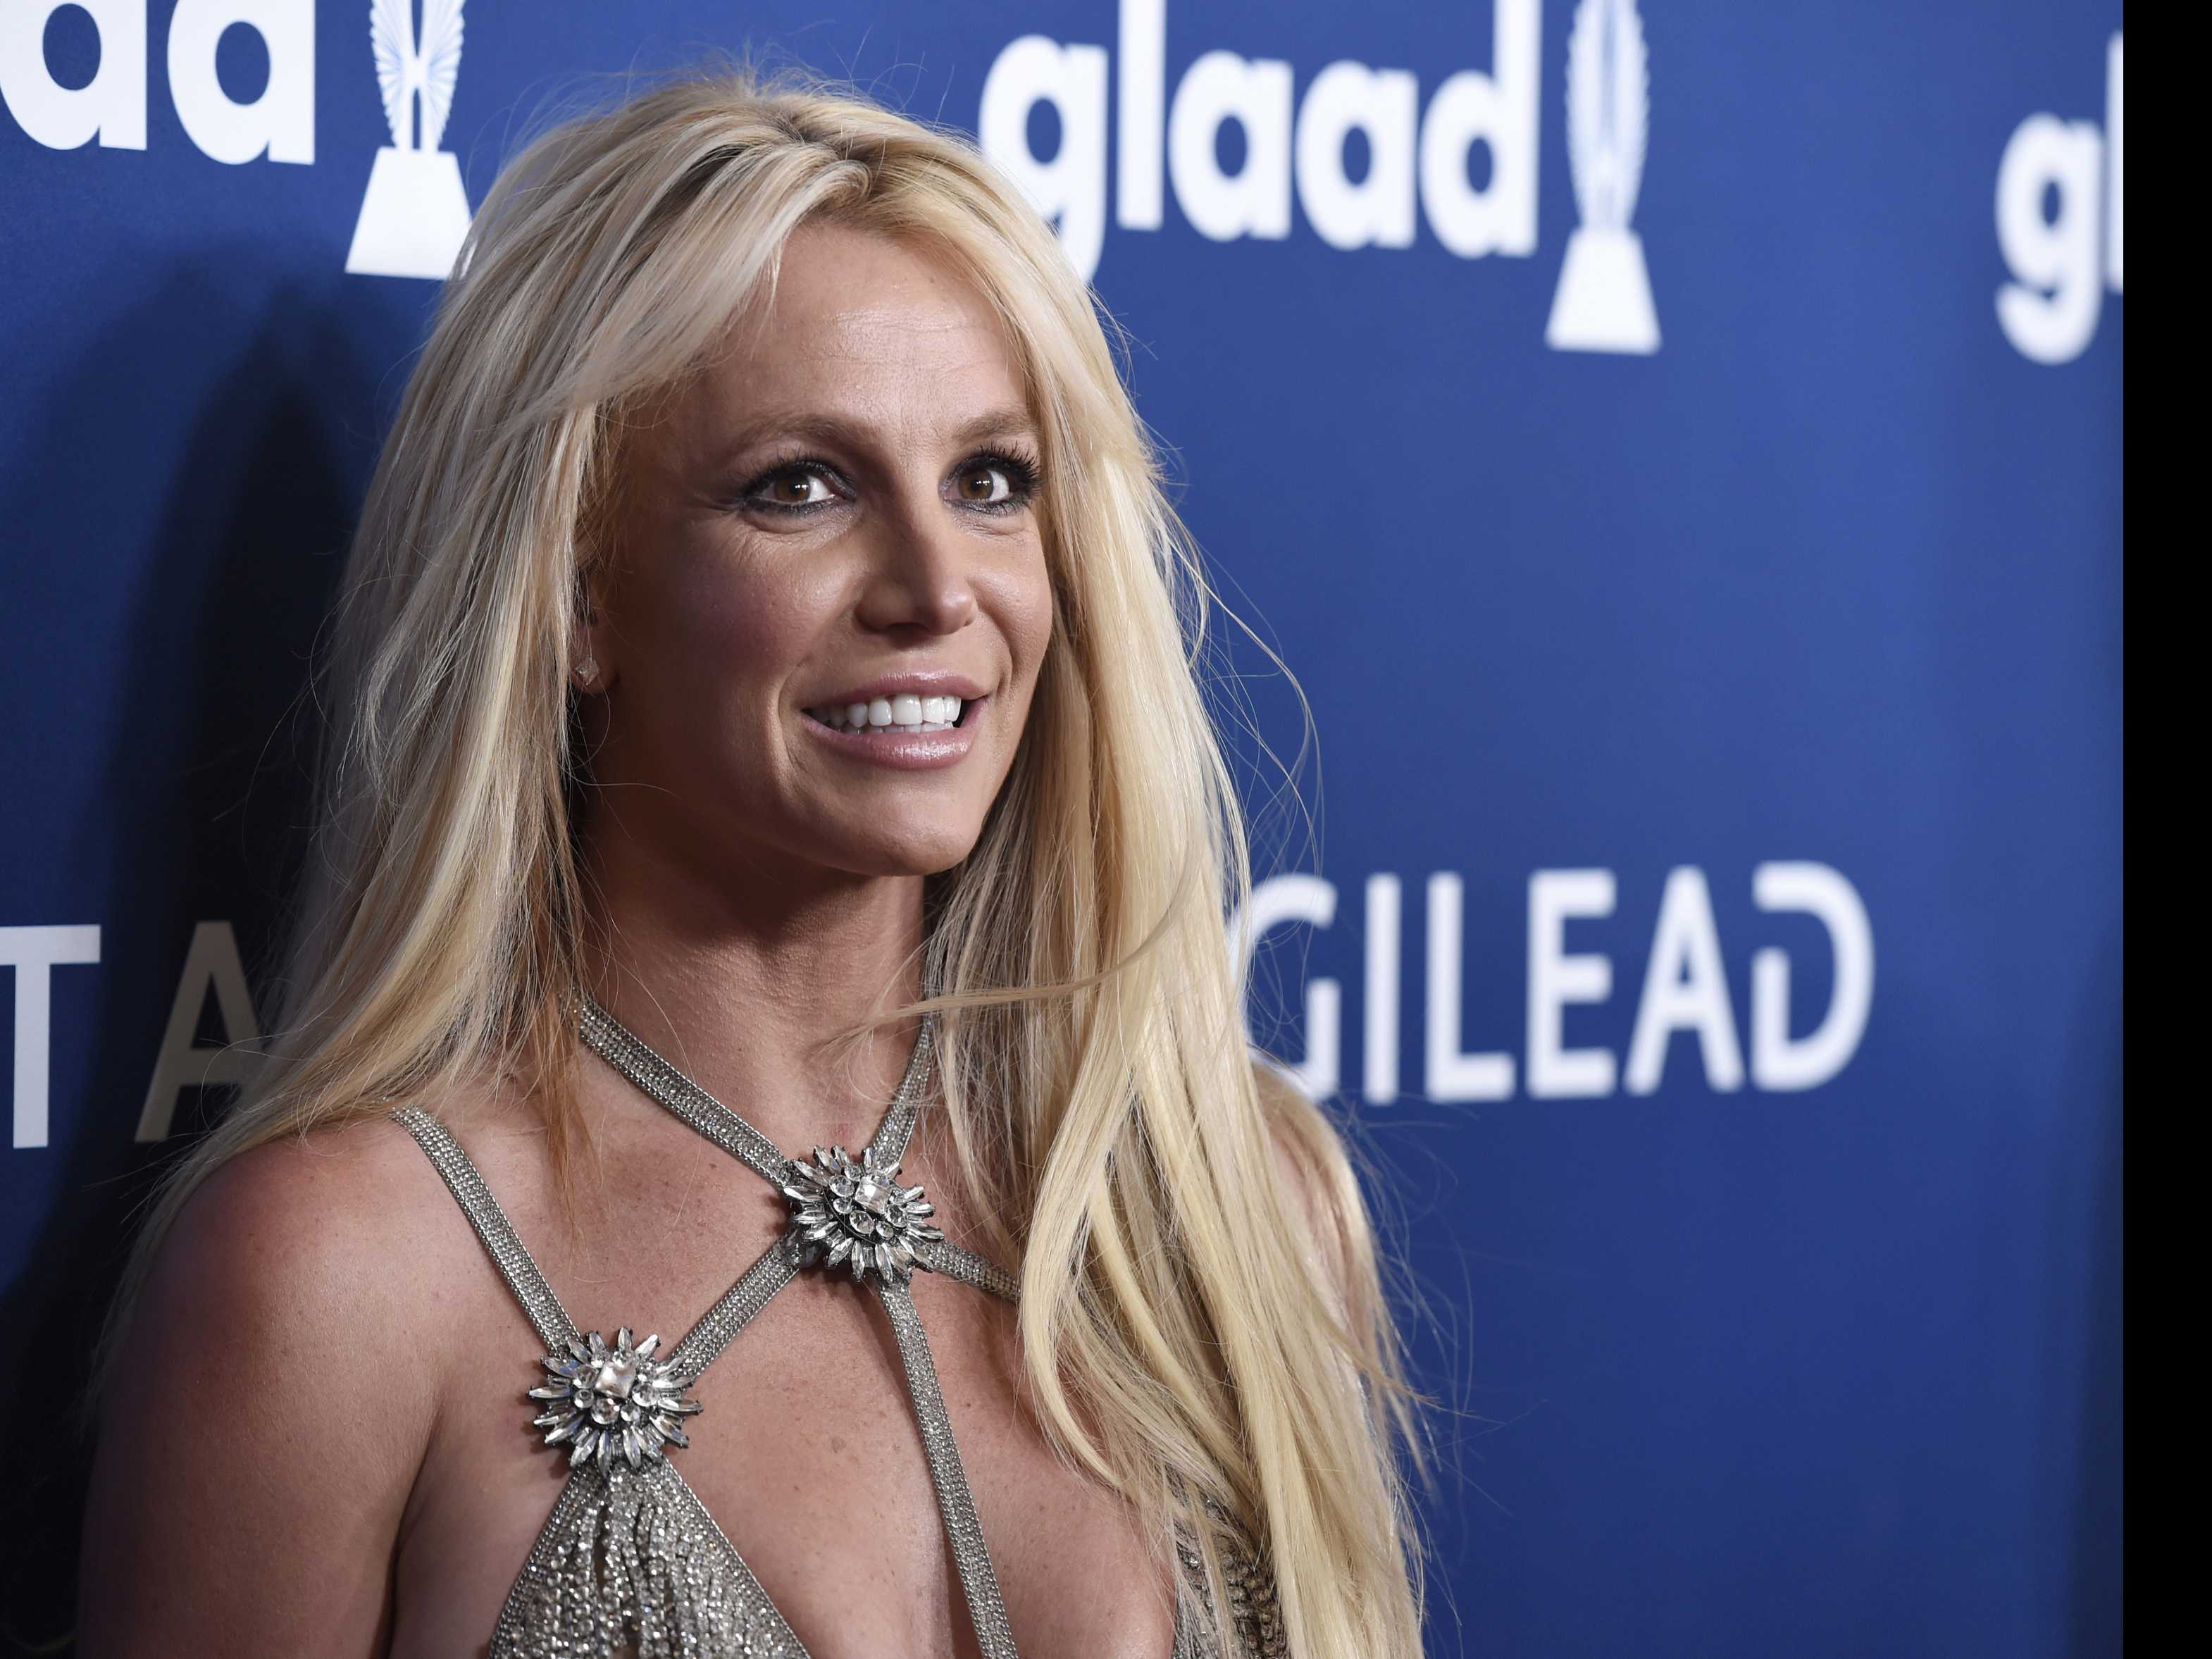 Britney Spears Puts Vegas Shows on Hold Due to Dad's Health